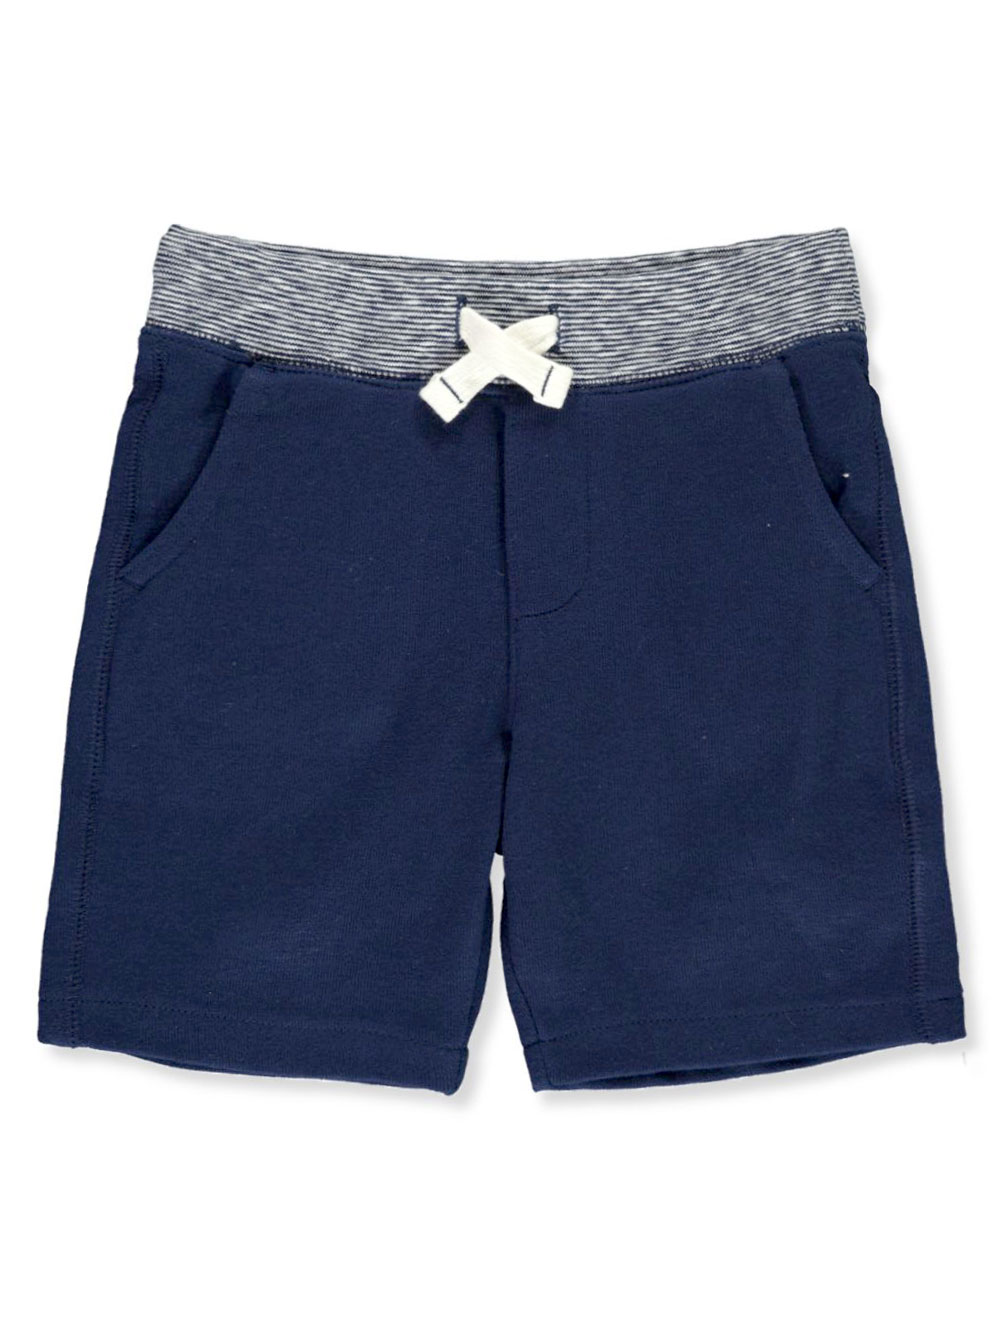 Boys' French Terry Shorts